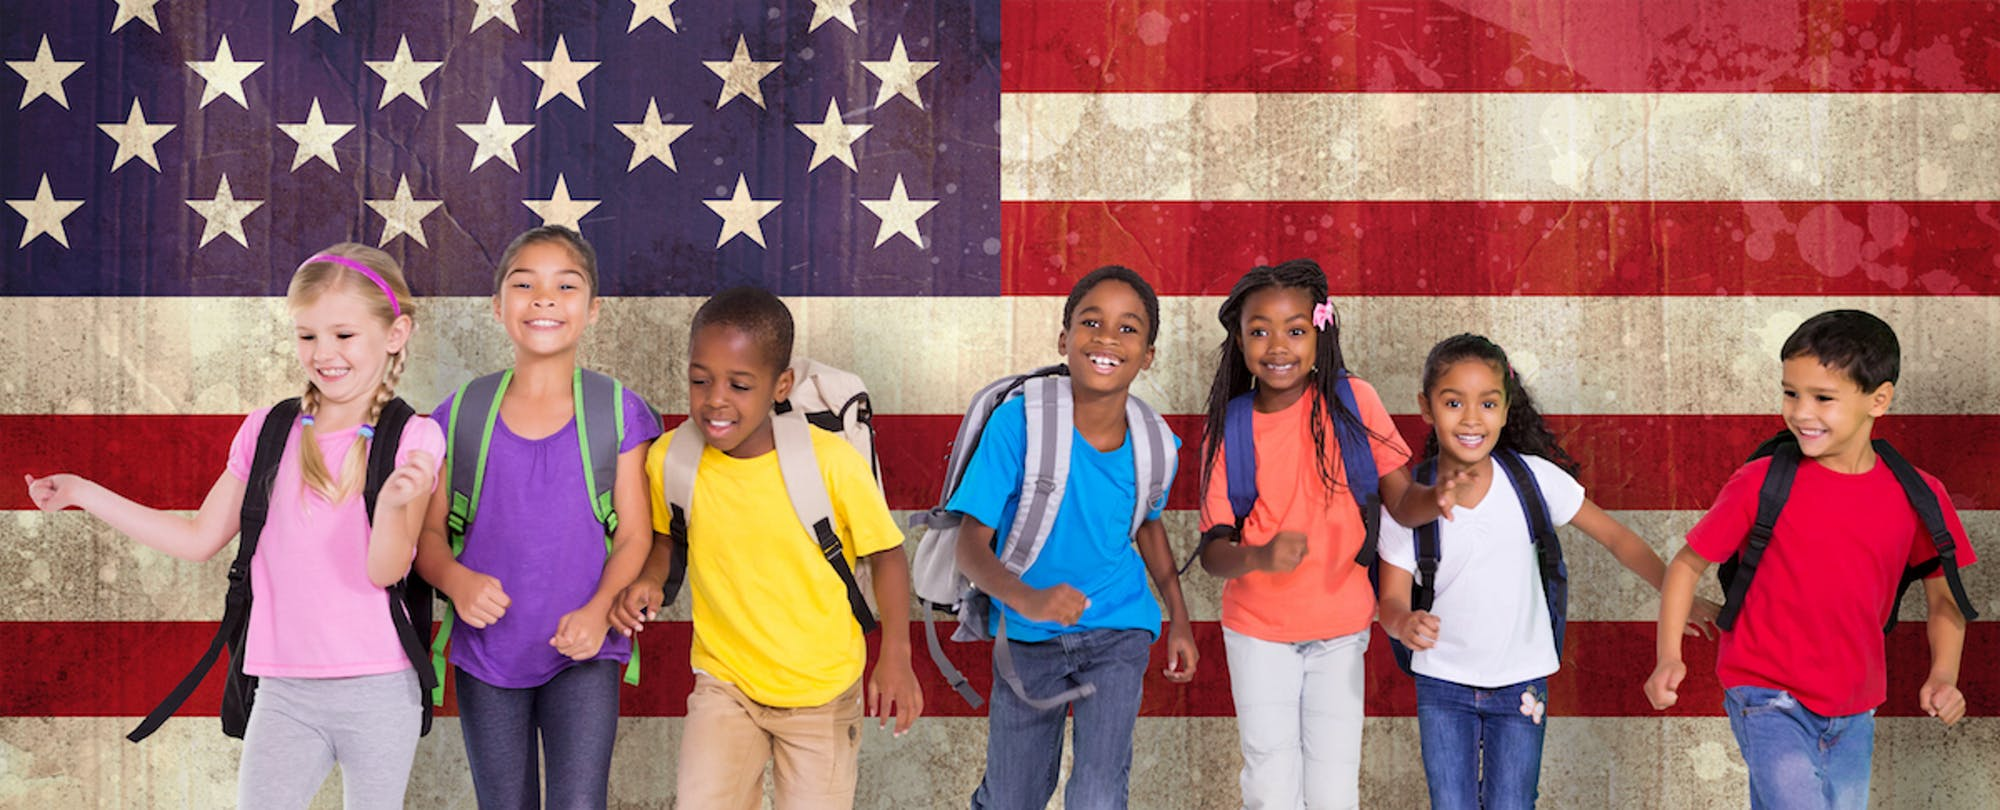 What Could $4 Billion Do for American Education?